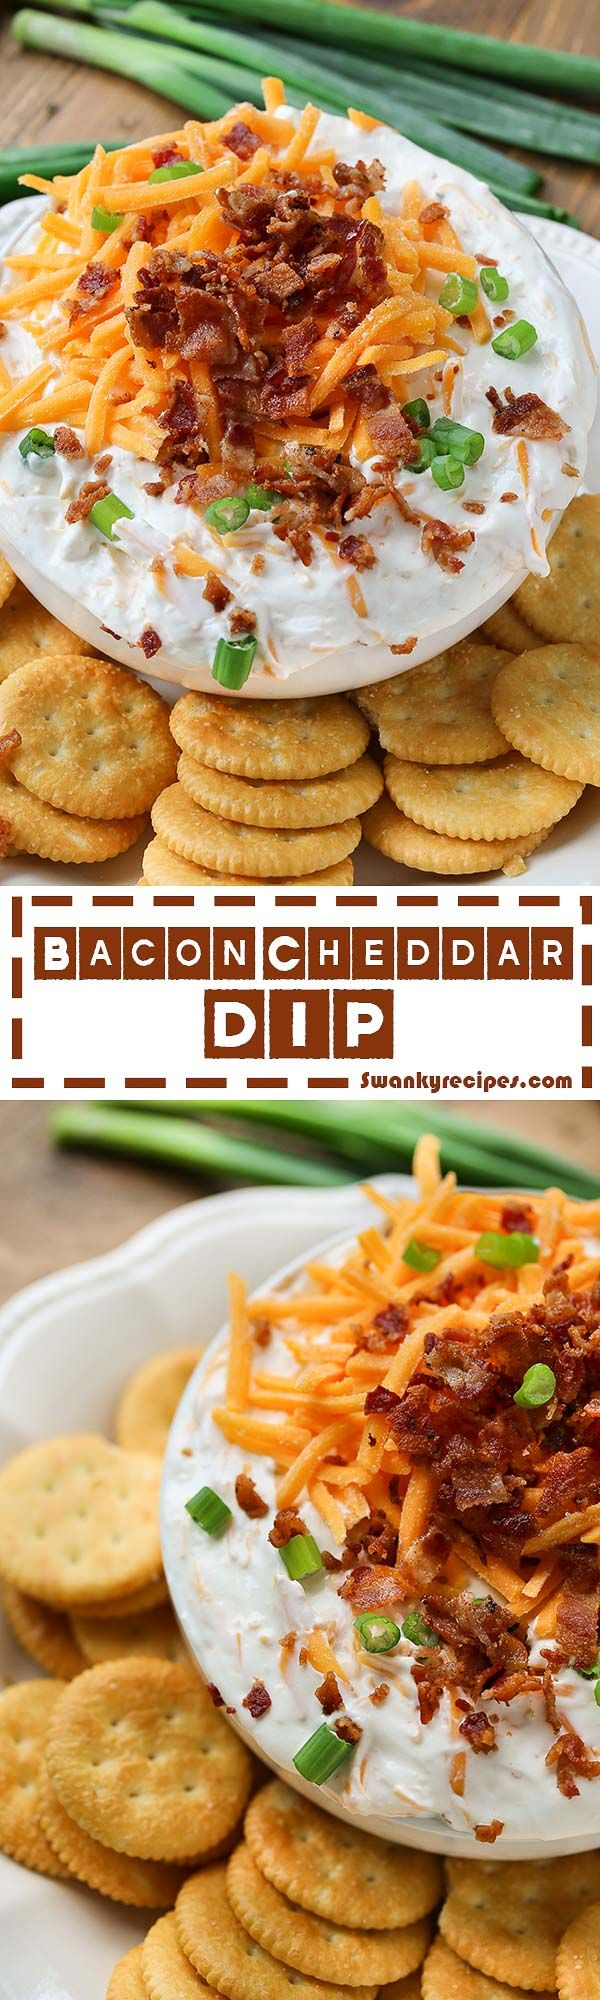 Bacon Cheddar Dip Recipe Long Photo